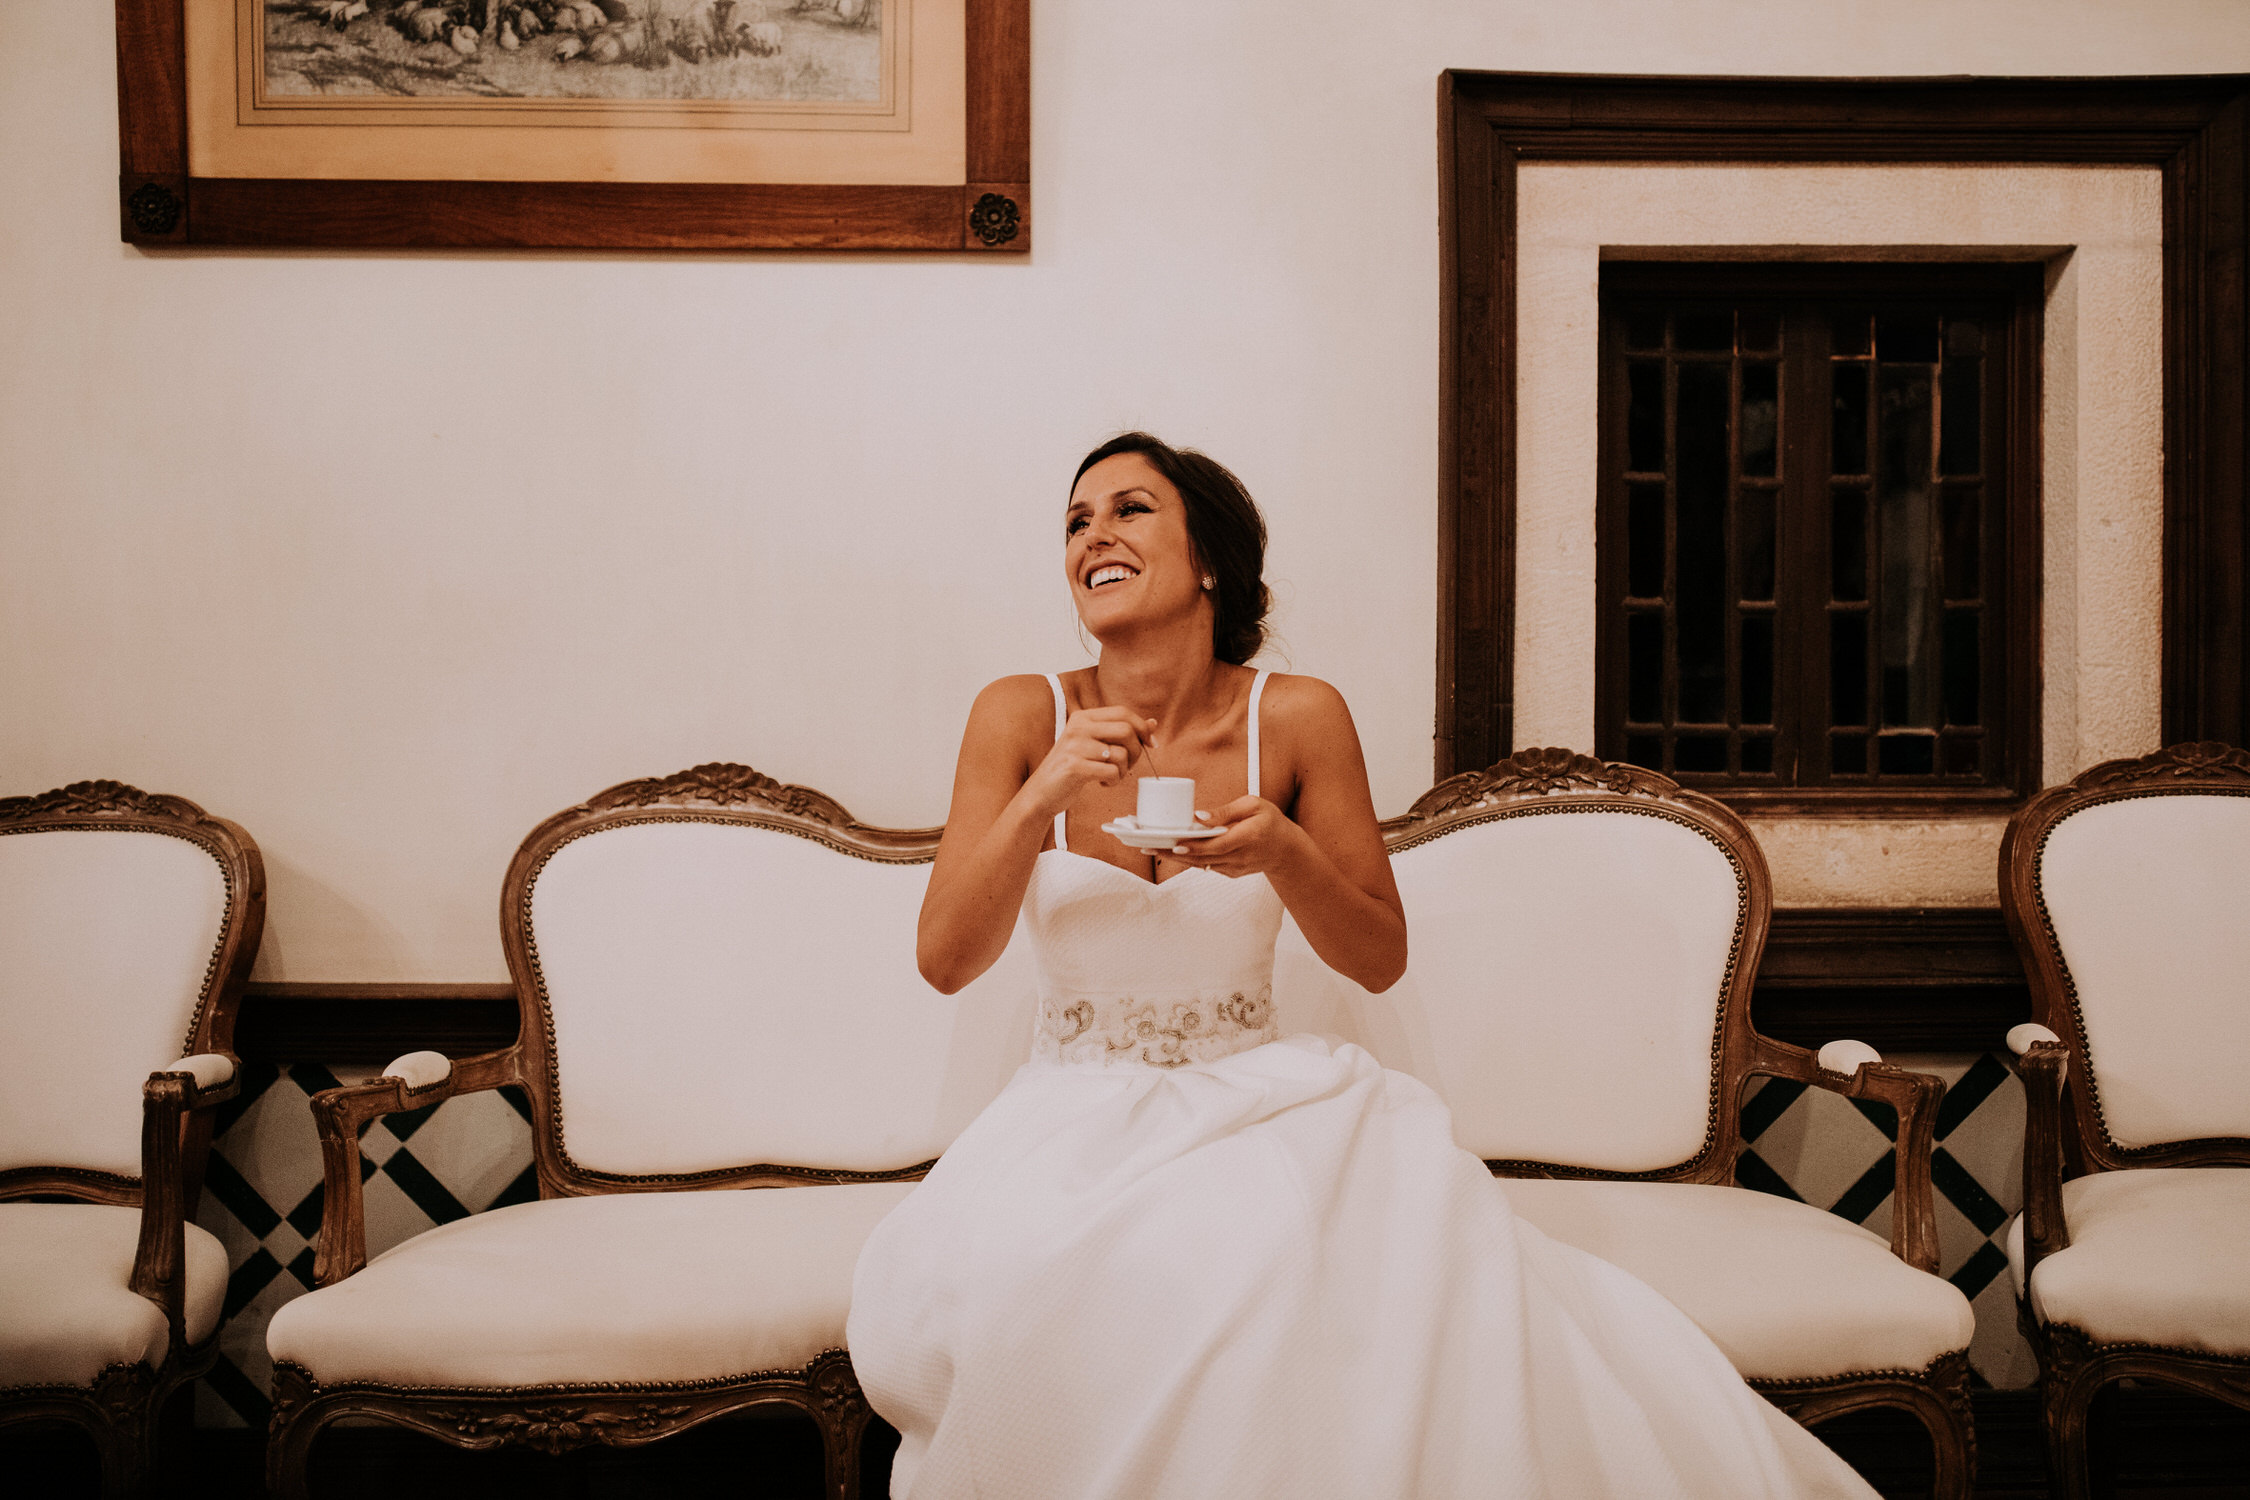 105 Filipe Santiago Fotografia Casamento wedding photographer near venue Lisbon Malveira Ericeira best Sintra Portugal destination